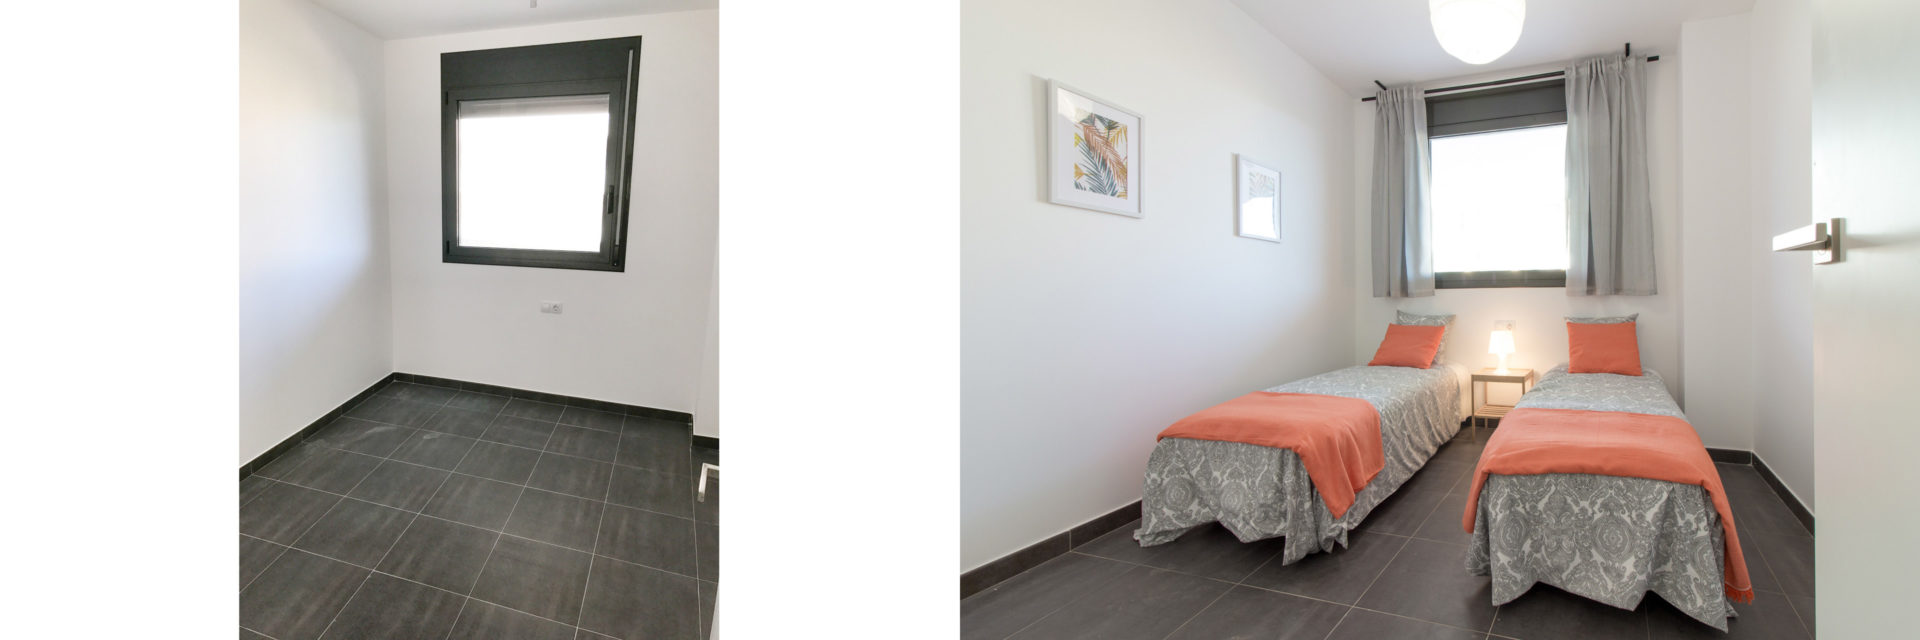 piso piloto dormitorio juvenil tarragona low cost home staging